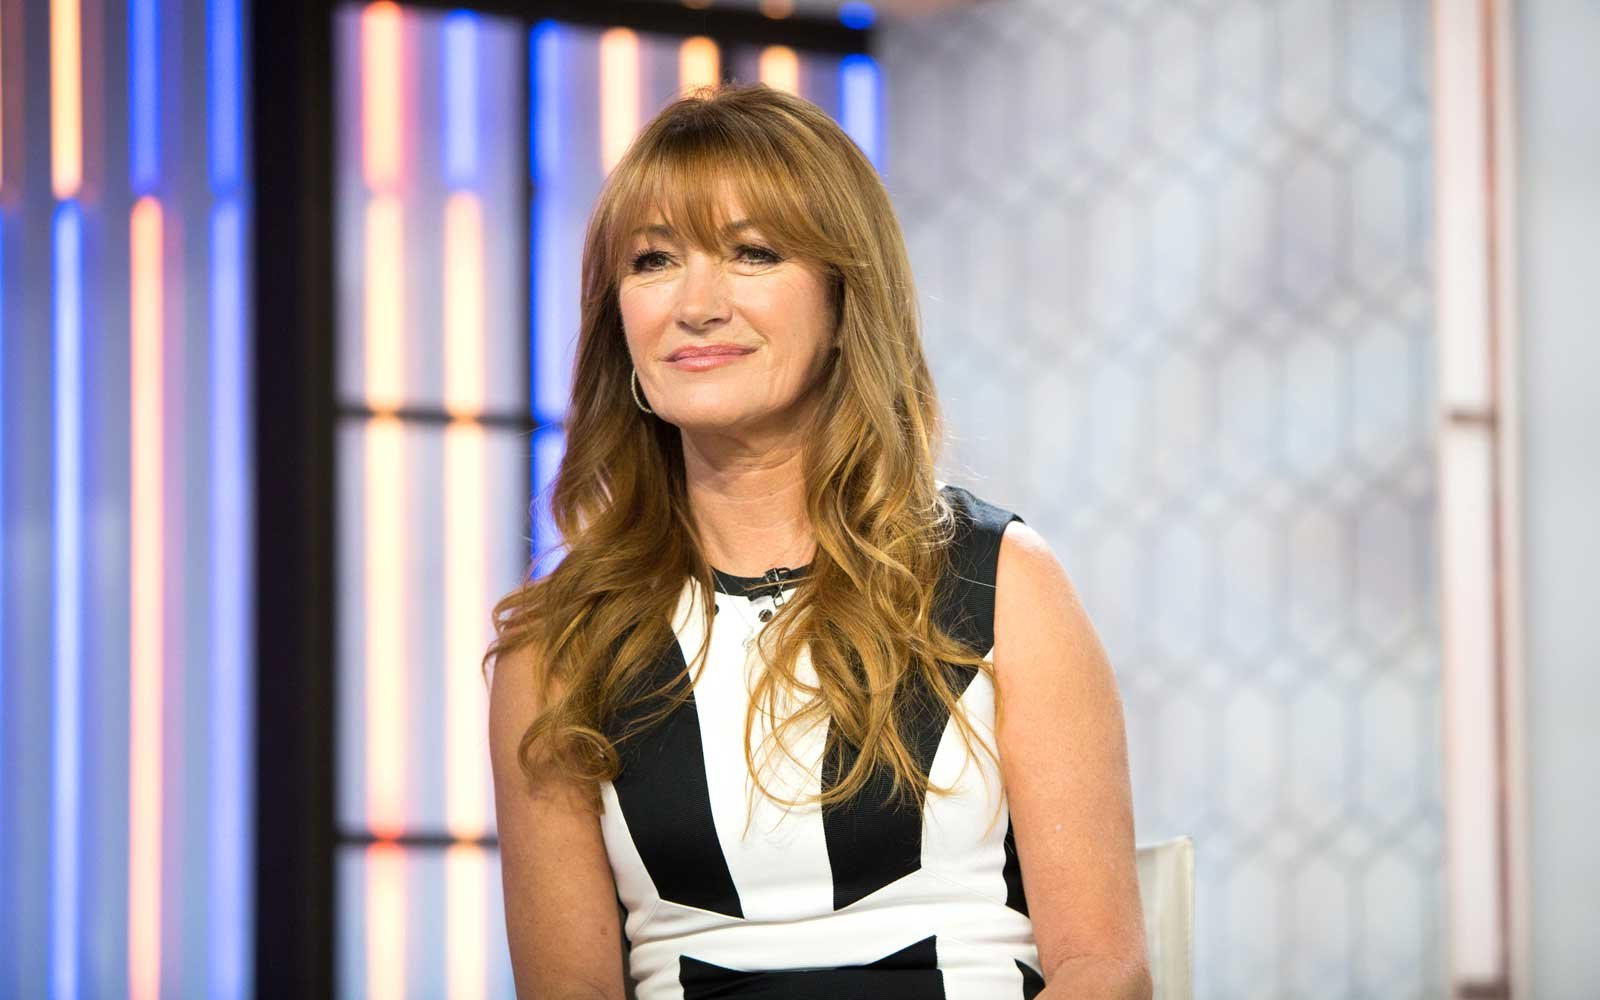 Jane Seymour on Monday, December 4, 2017 TODAY Show